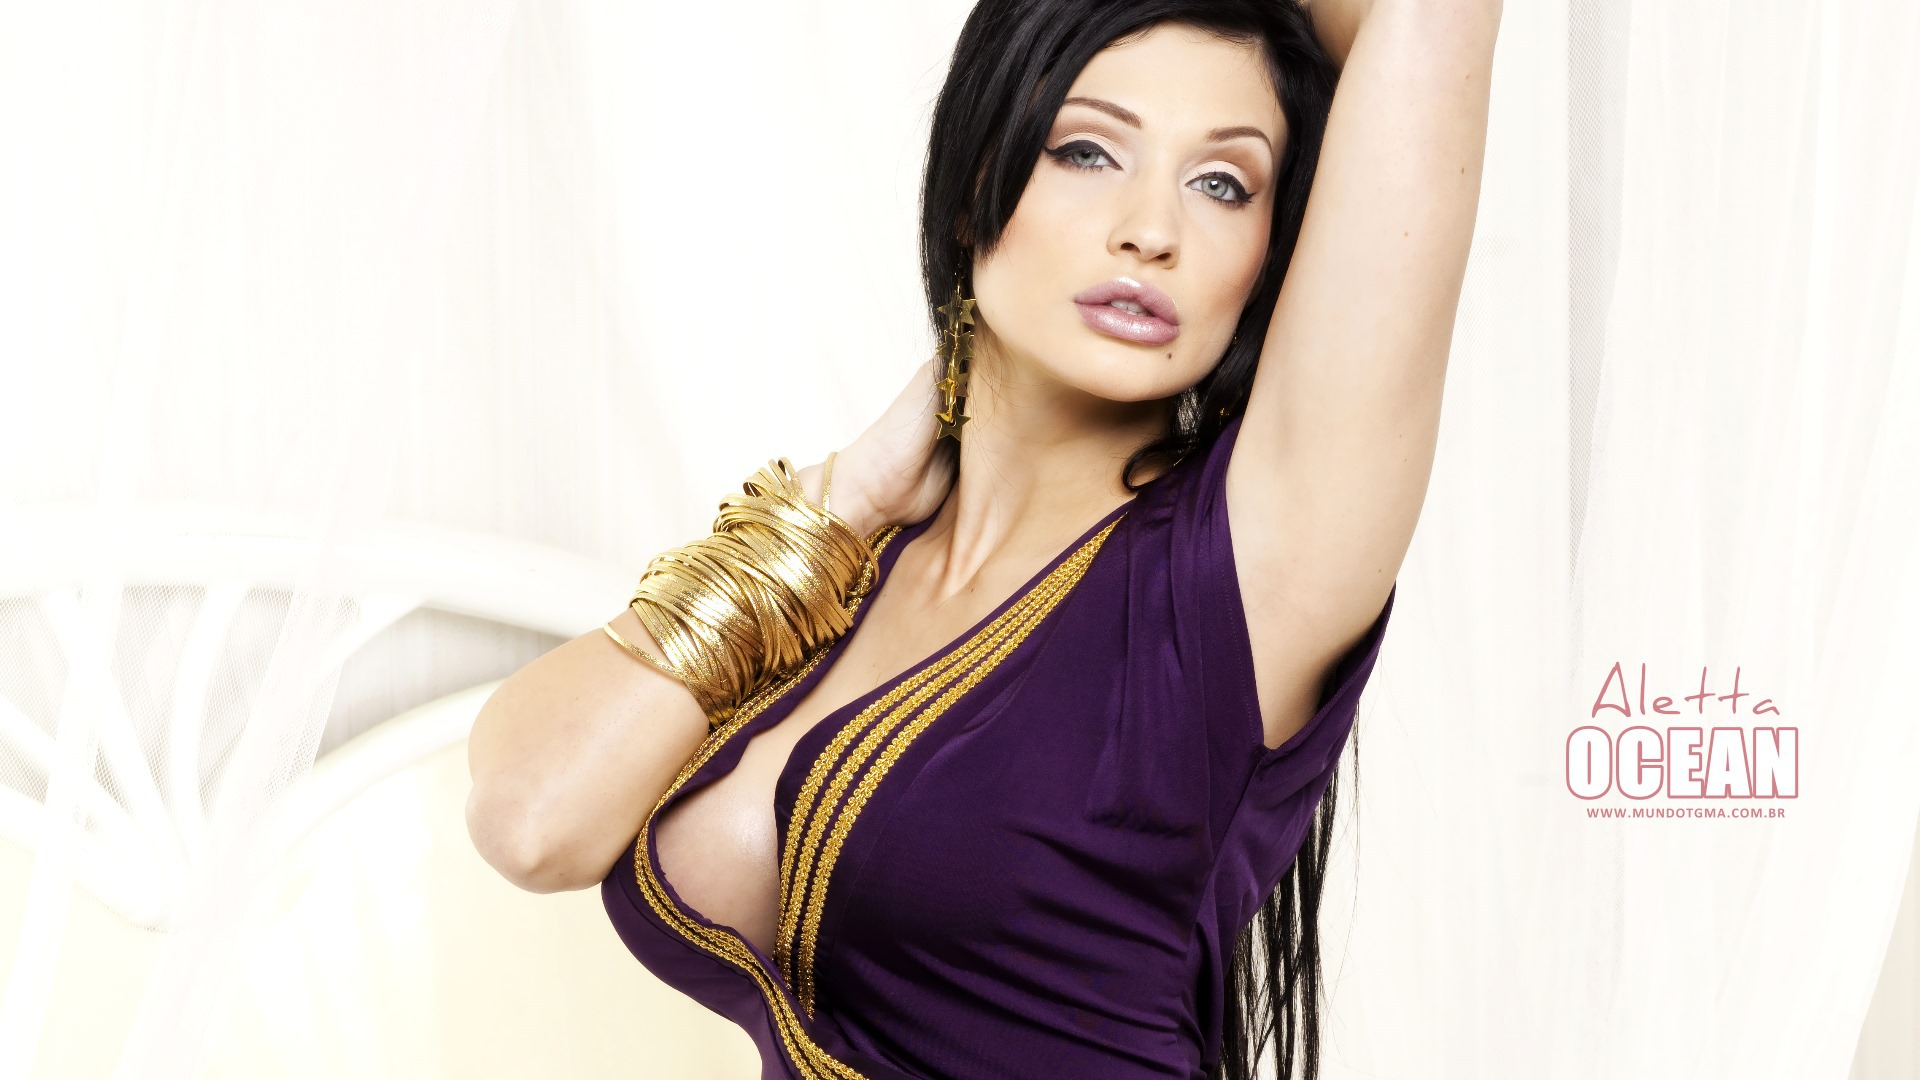 Aletta Ocean Wallpapers